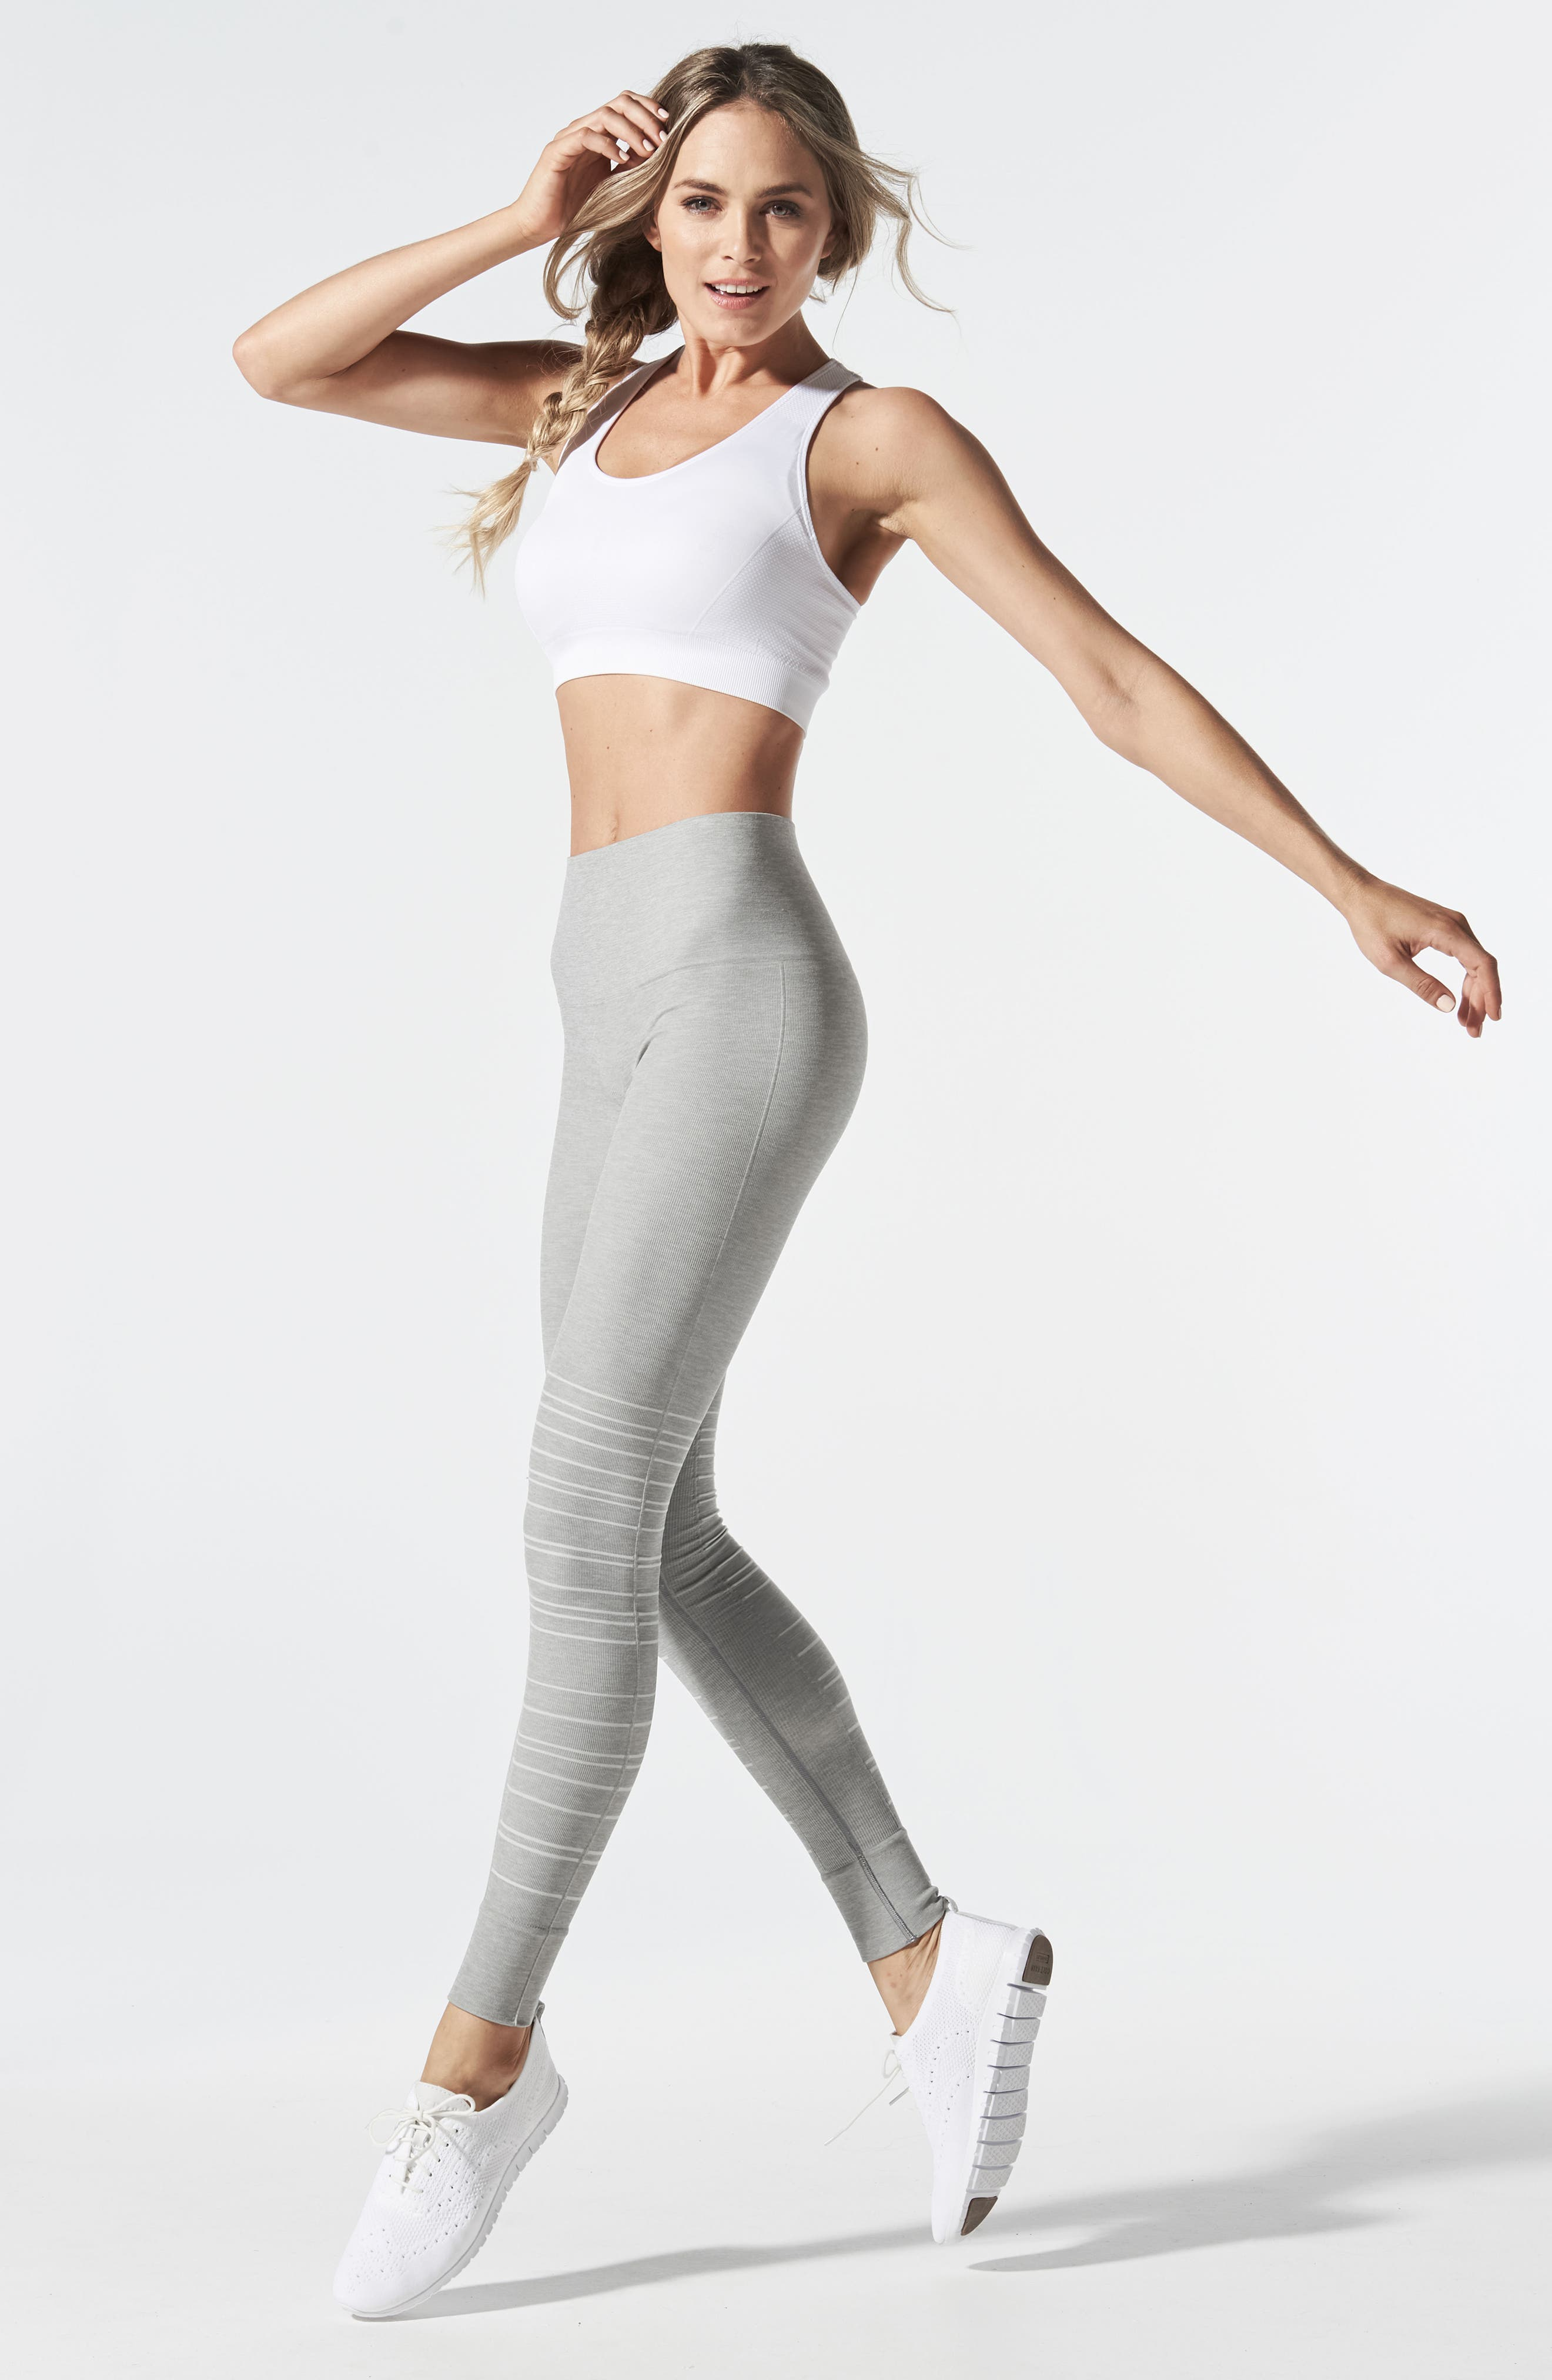 SportSupport<sup>®</sup> Hipster Cuffed Support Maternity/Postpartum Leggings,                             Alternate thumbnail 5, color,                             DOVE GREY